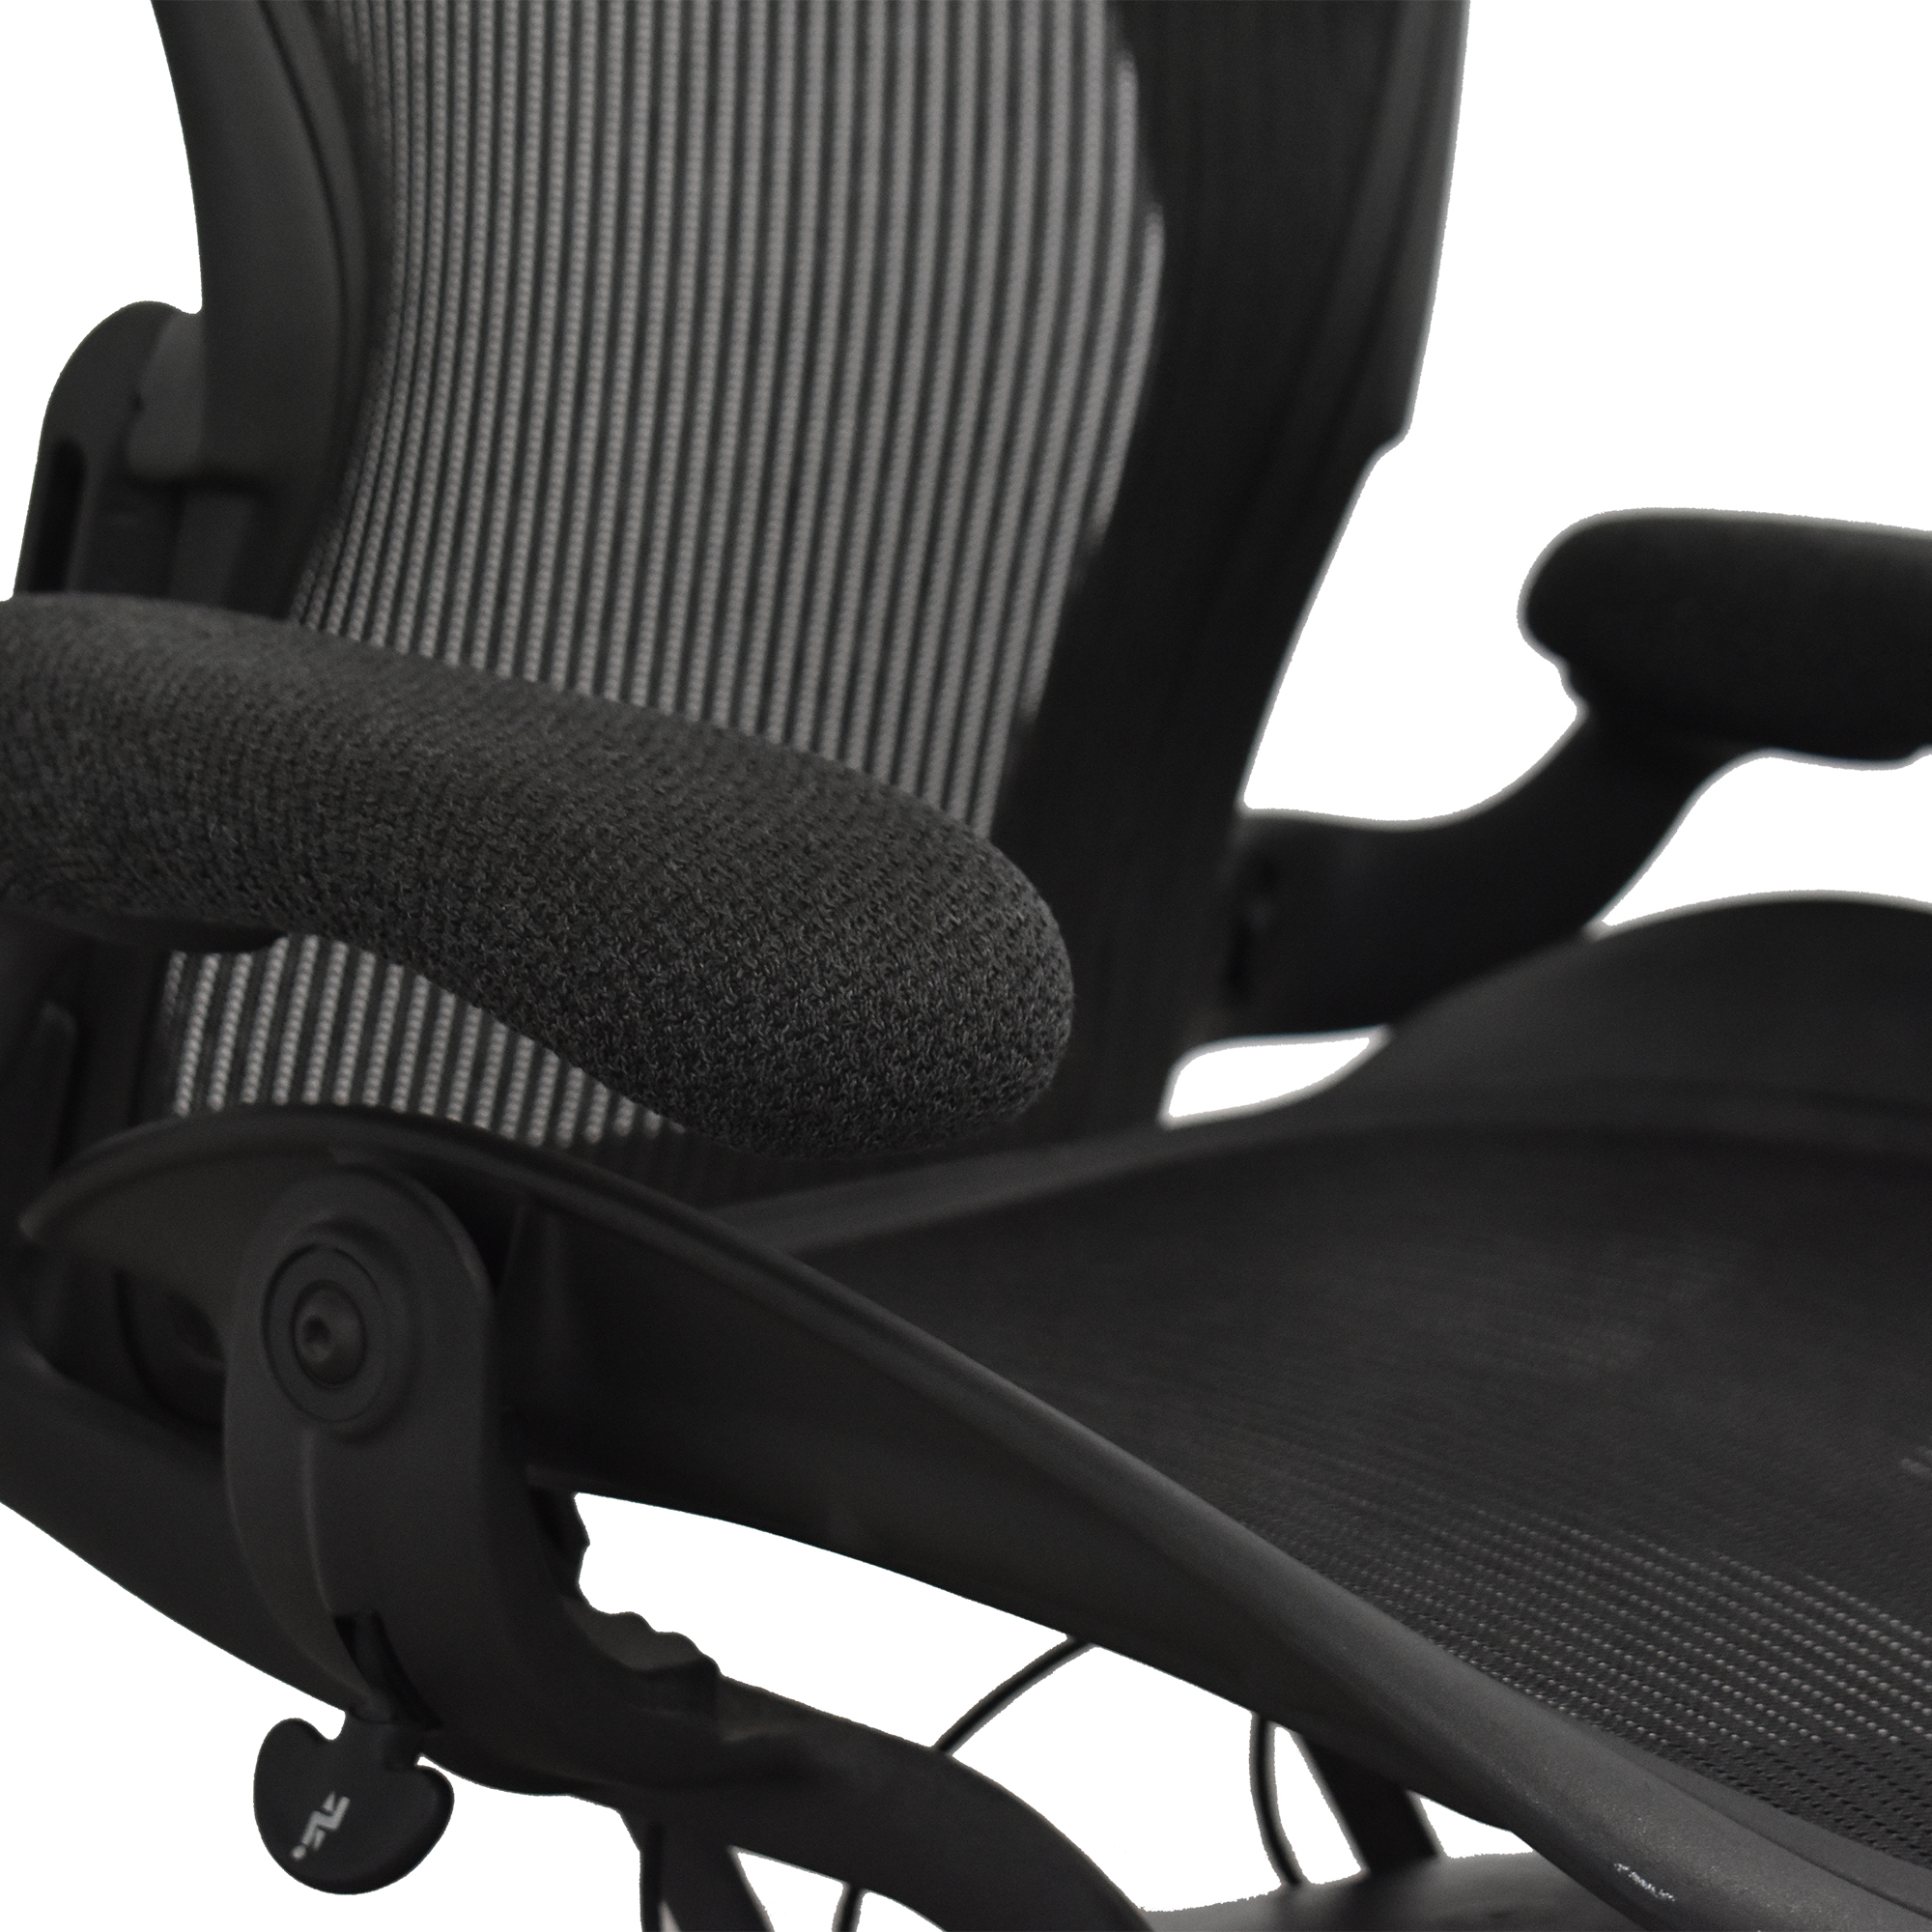 Herman Miller Herman MIller Aeron Office Chair used